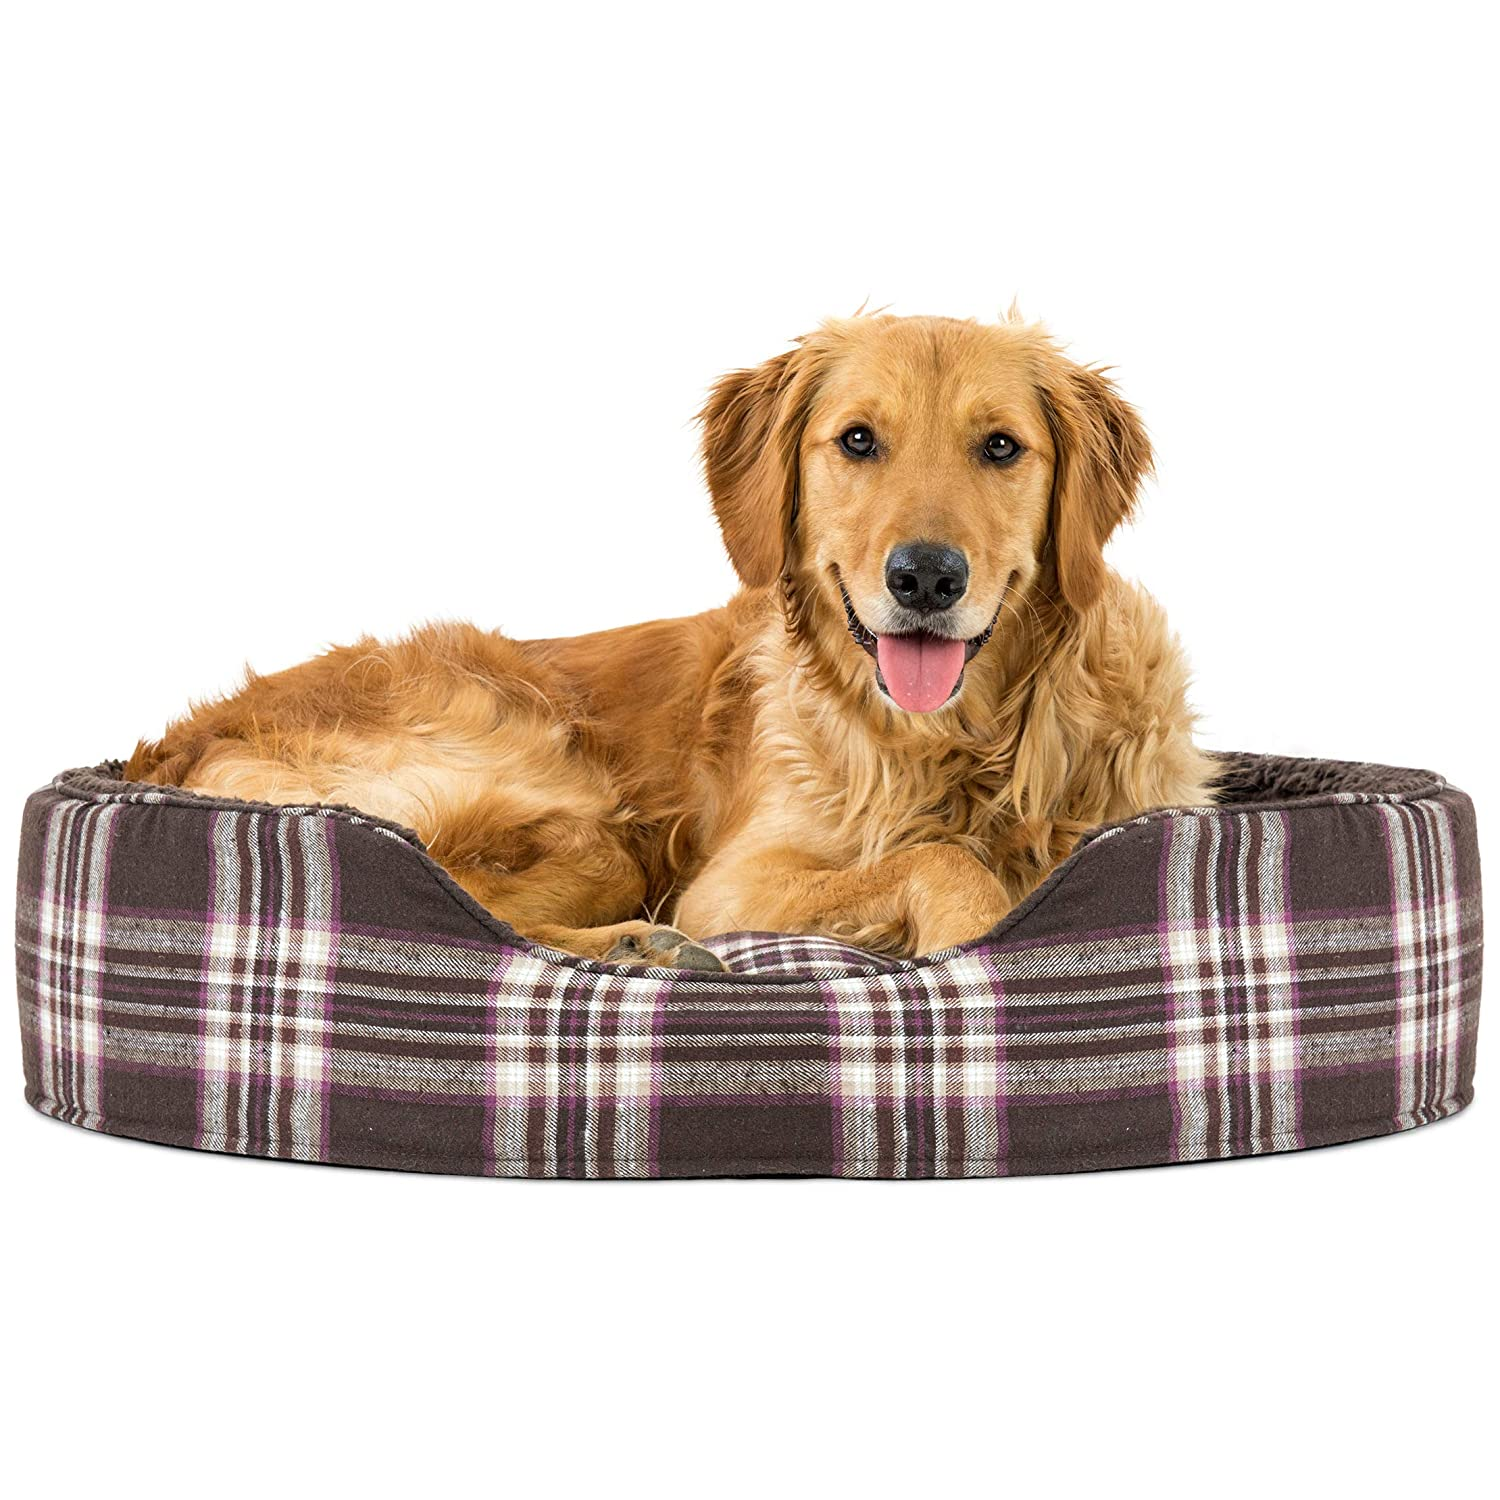 Java Brown X-Large Java Brown X-Large Fur Haven 13512426 Pet NAP Oval Terry Fleece and Plaid Bed for Dog or Cat, X-Large, Java Brown